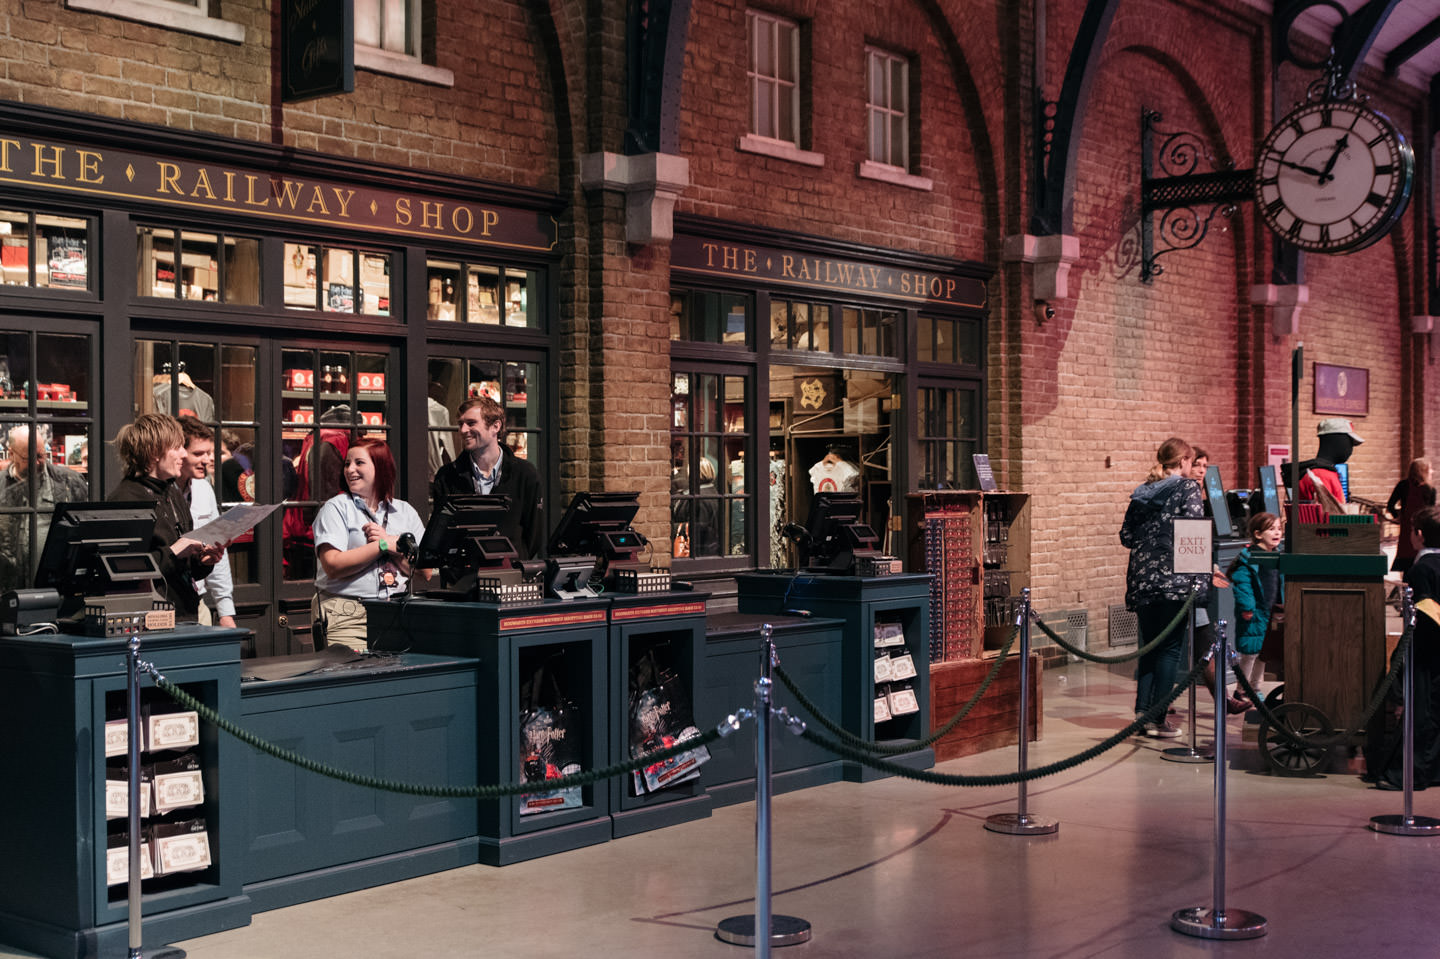 Blog-Mode-And-The-City-Lifestyle-Visite-Studios-Harry-Potter-Londres-18